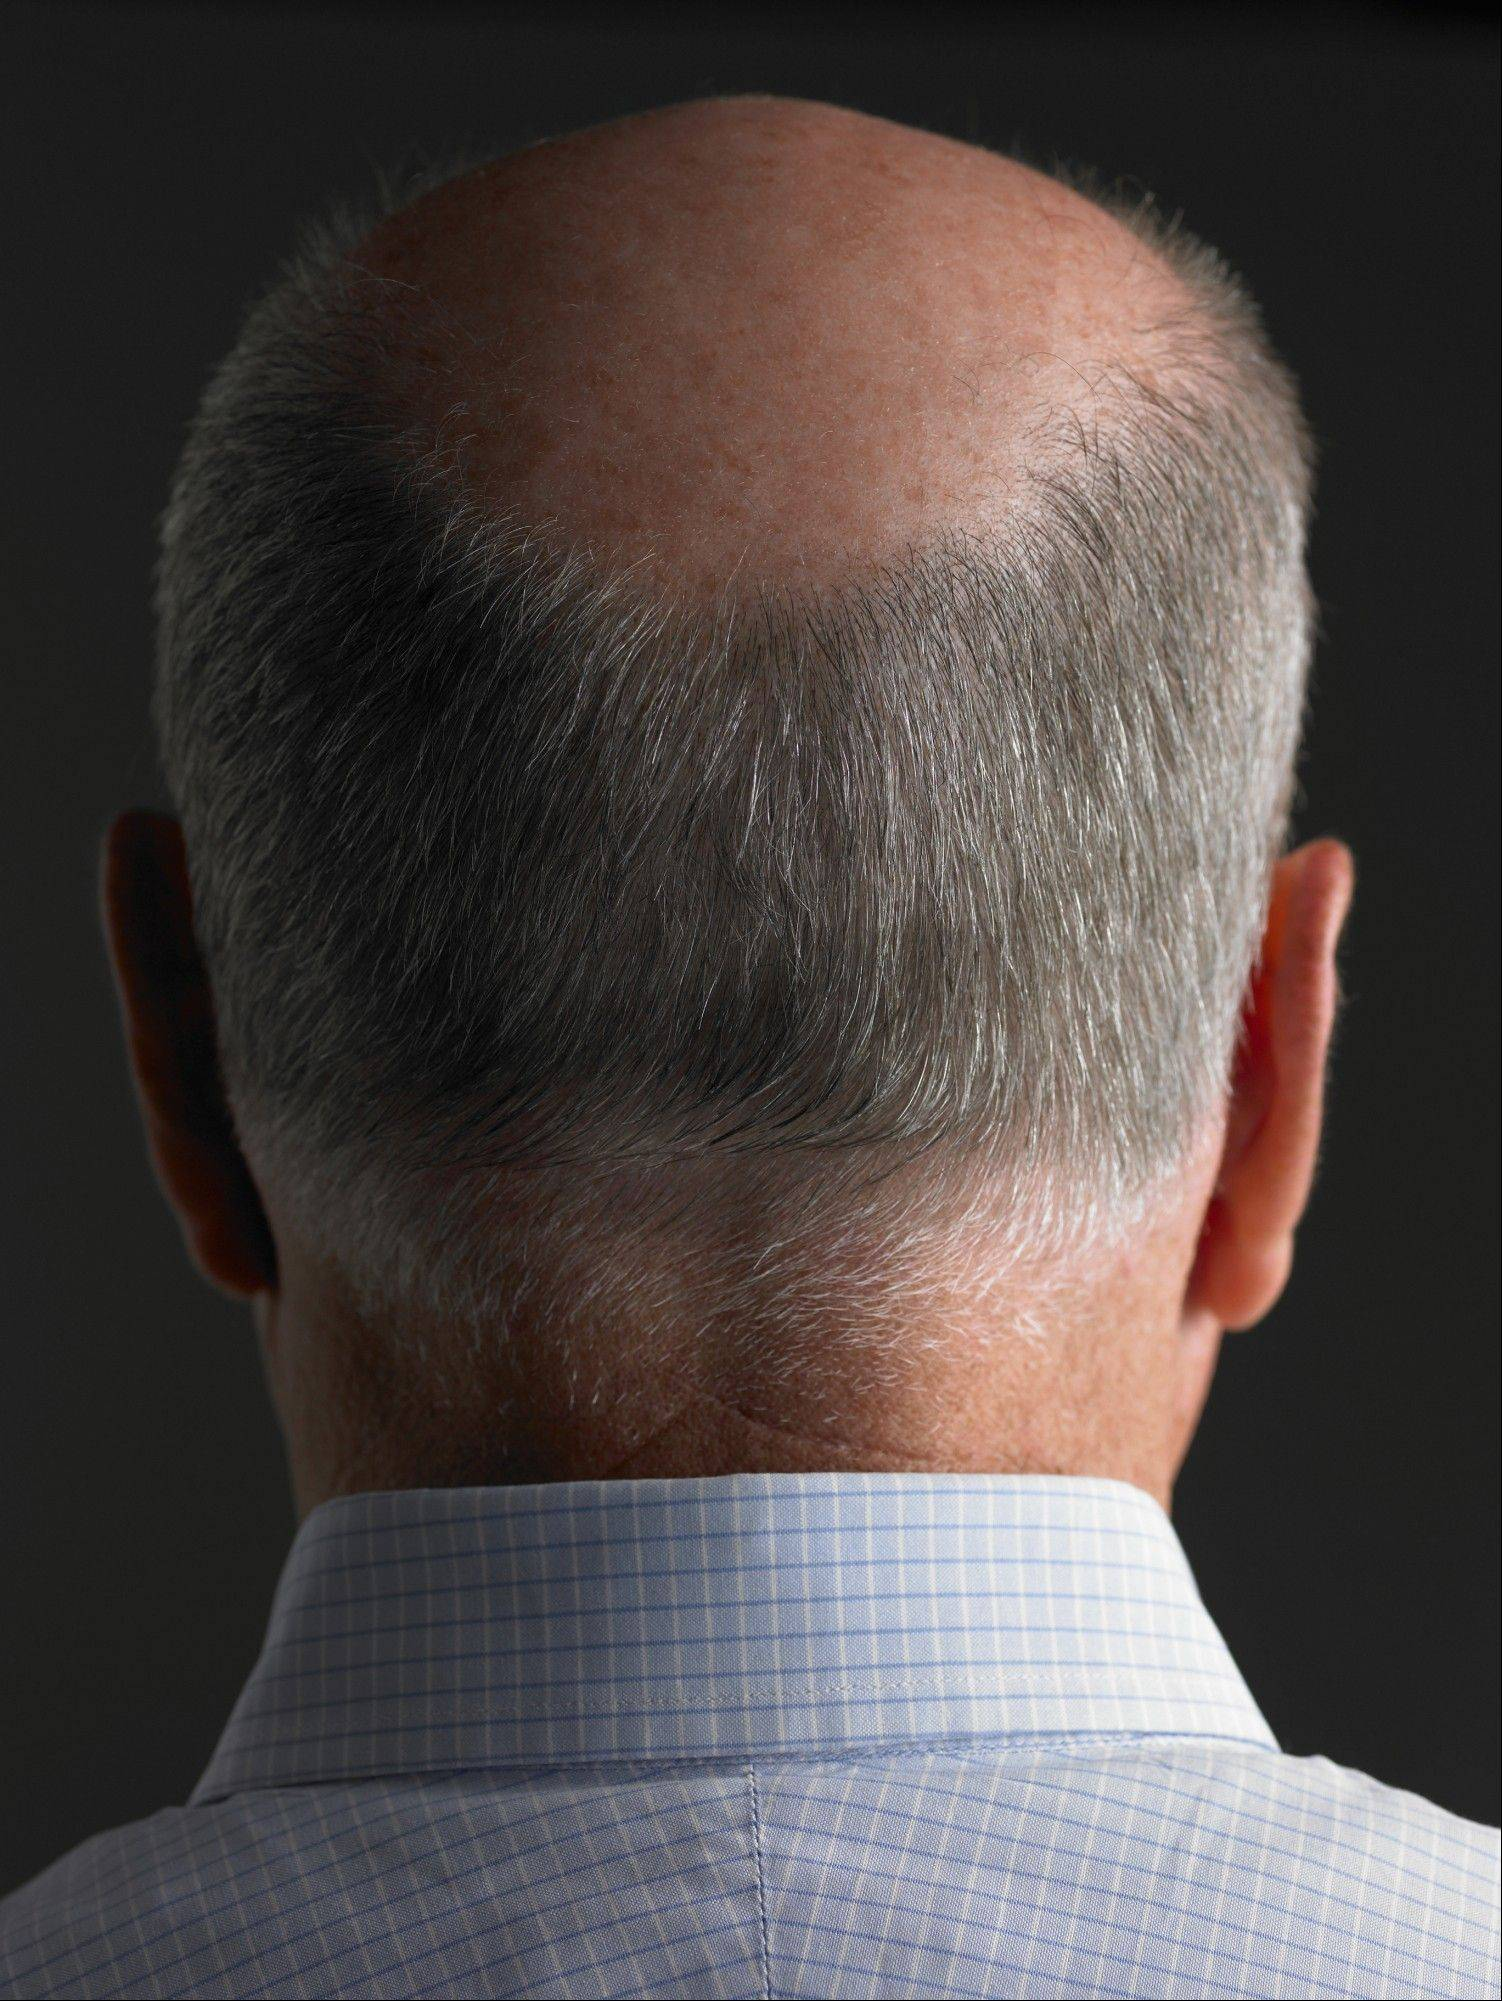 Men who lose hair at the crown of the head may have a higher risk of heart disease.